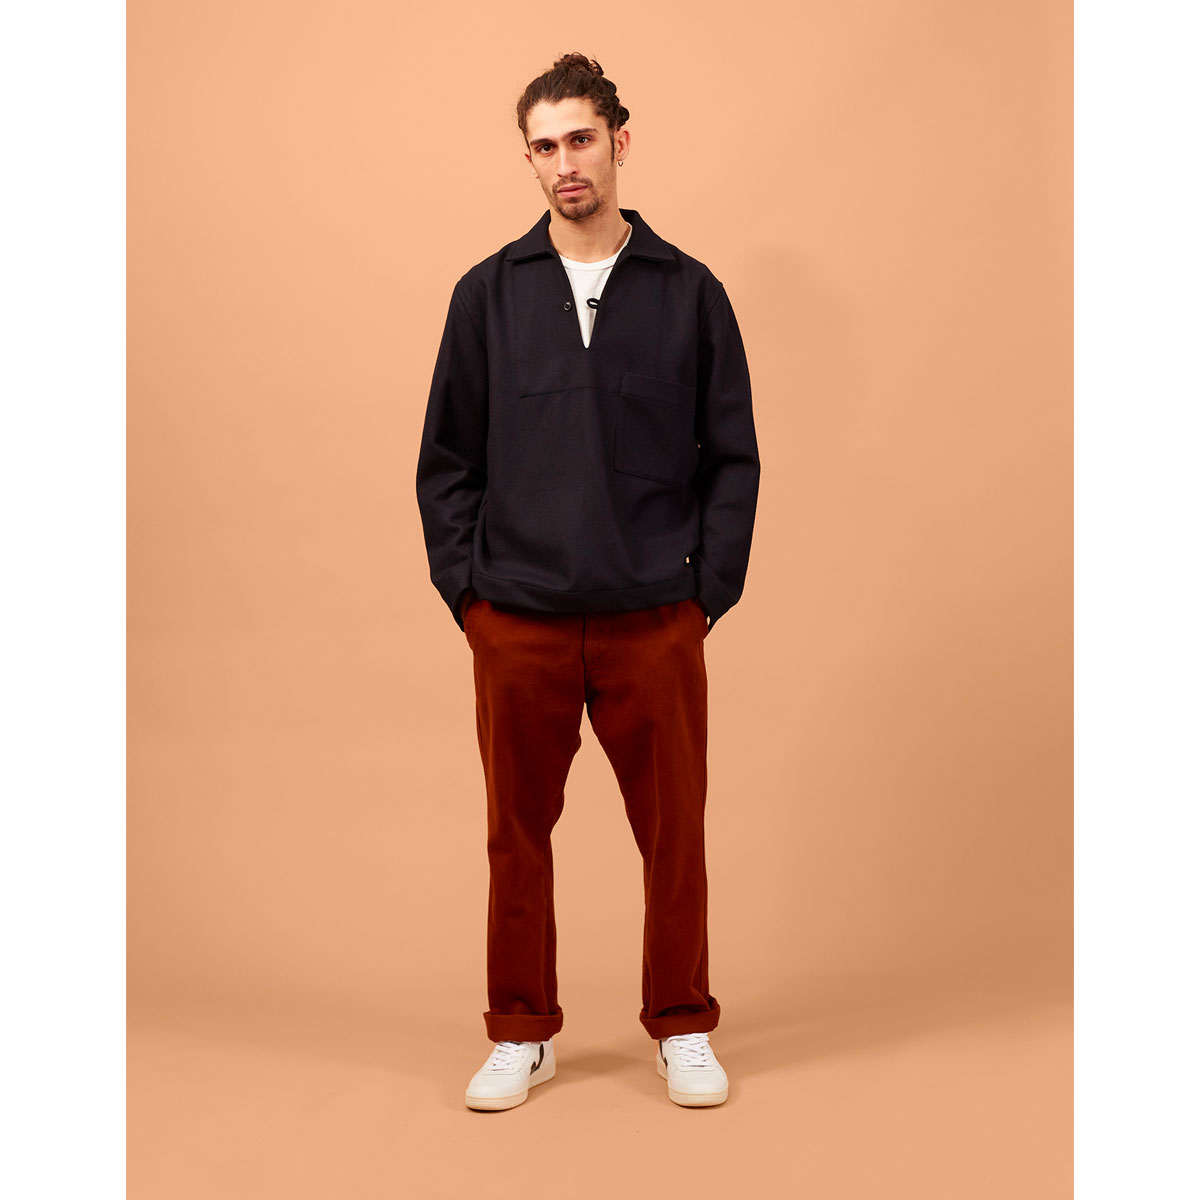 OUTLAND Pantalon DOCK Twill rouille